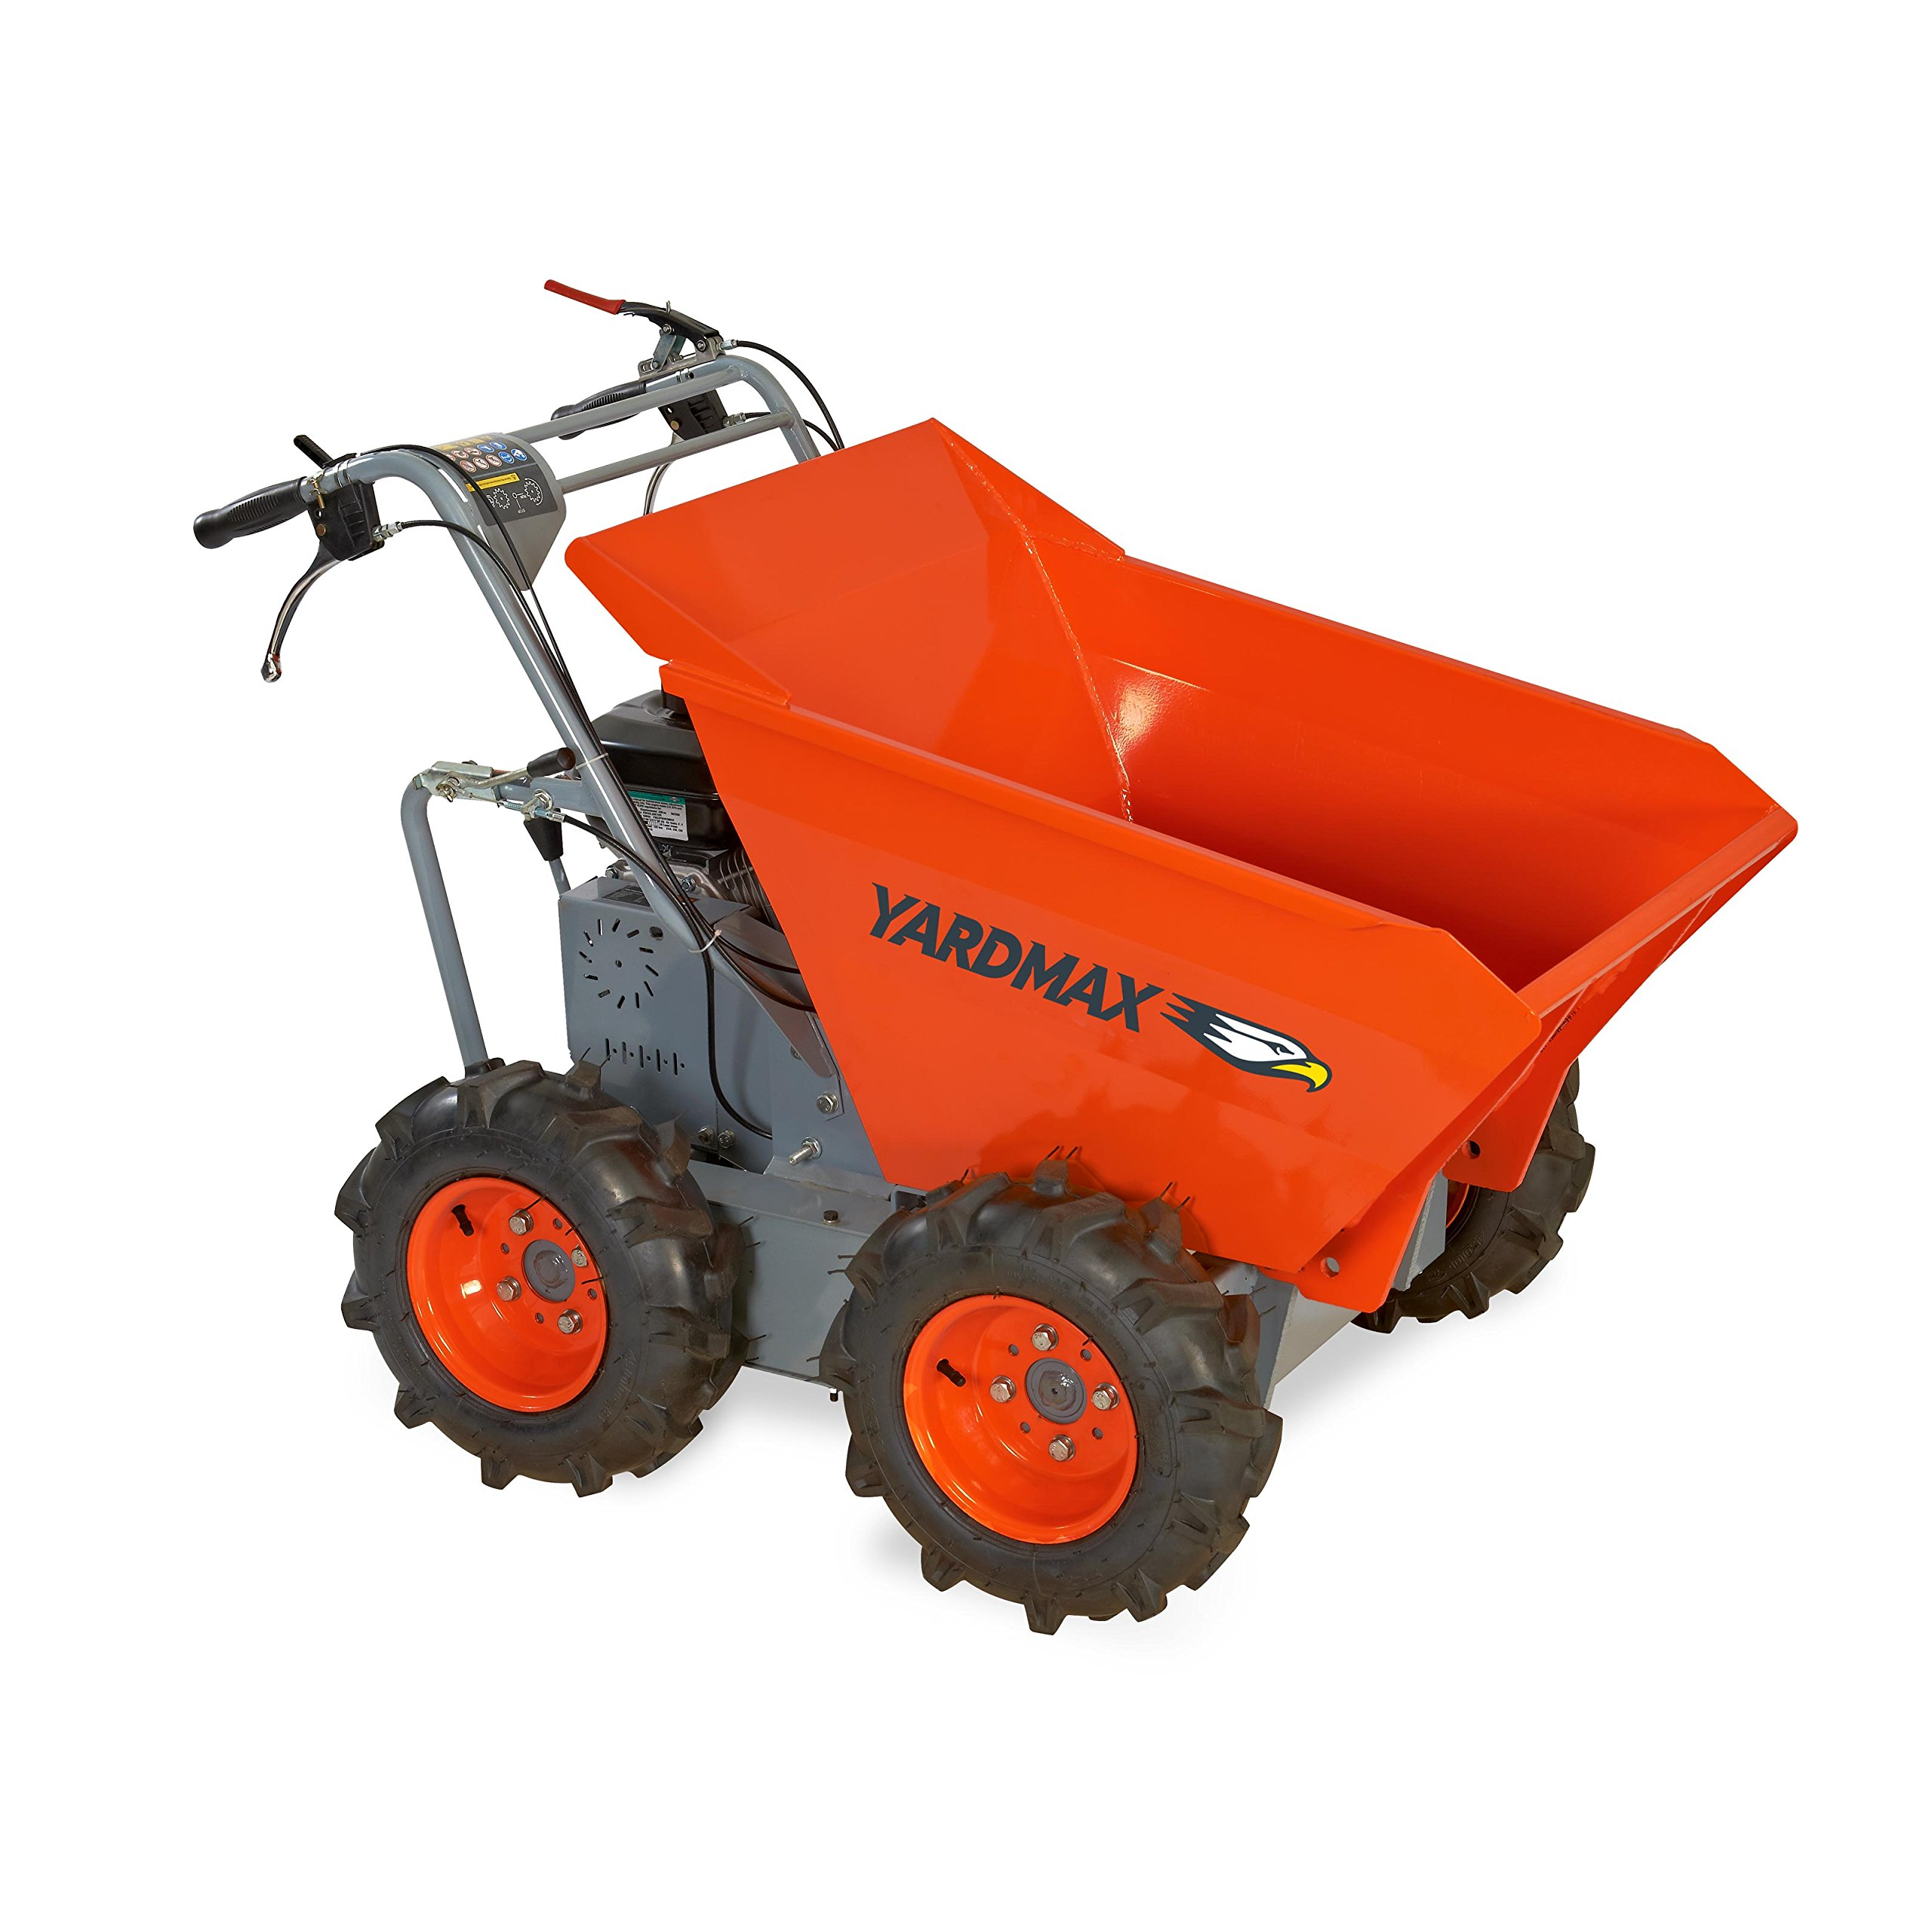 YARDMAX YD4103 Power Wheel Barrow, 660 lb. Capacity, Briggs and Stratton, CR950, 6.5 hp, 208cc